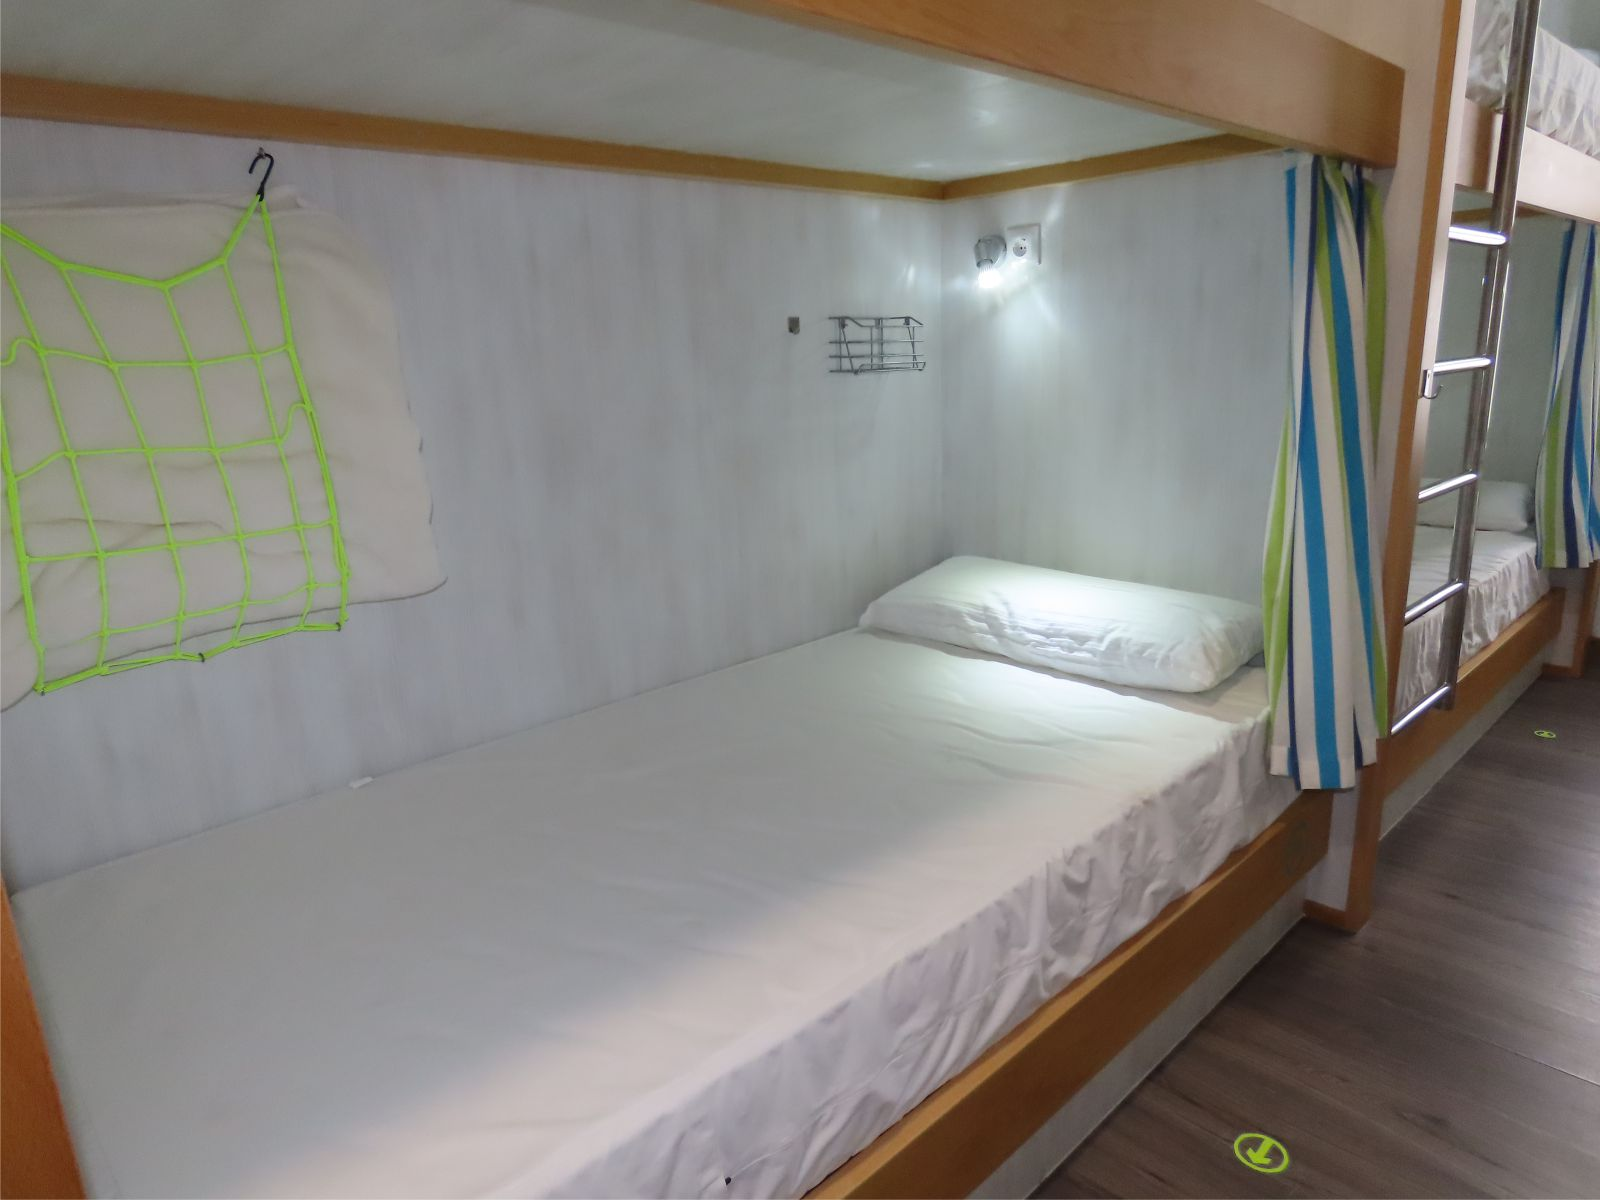 Cama con cortina, luz y enchufe - Bed with curtain, light and plug